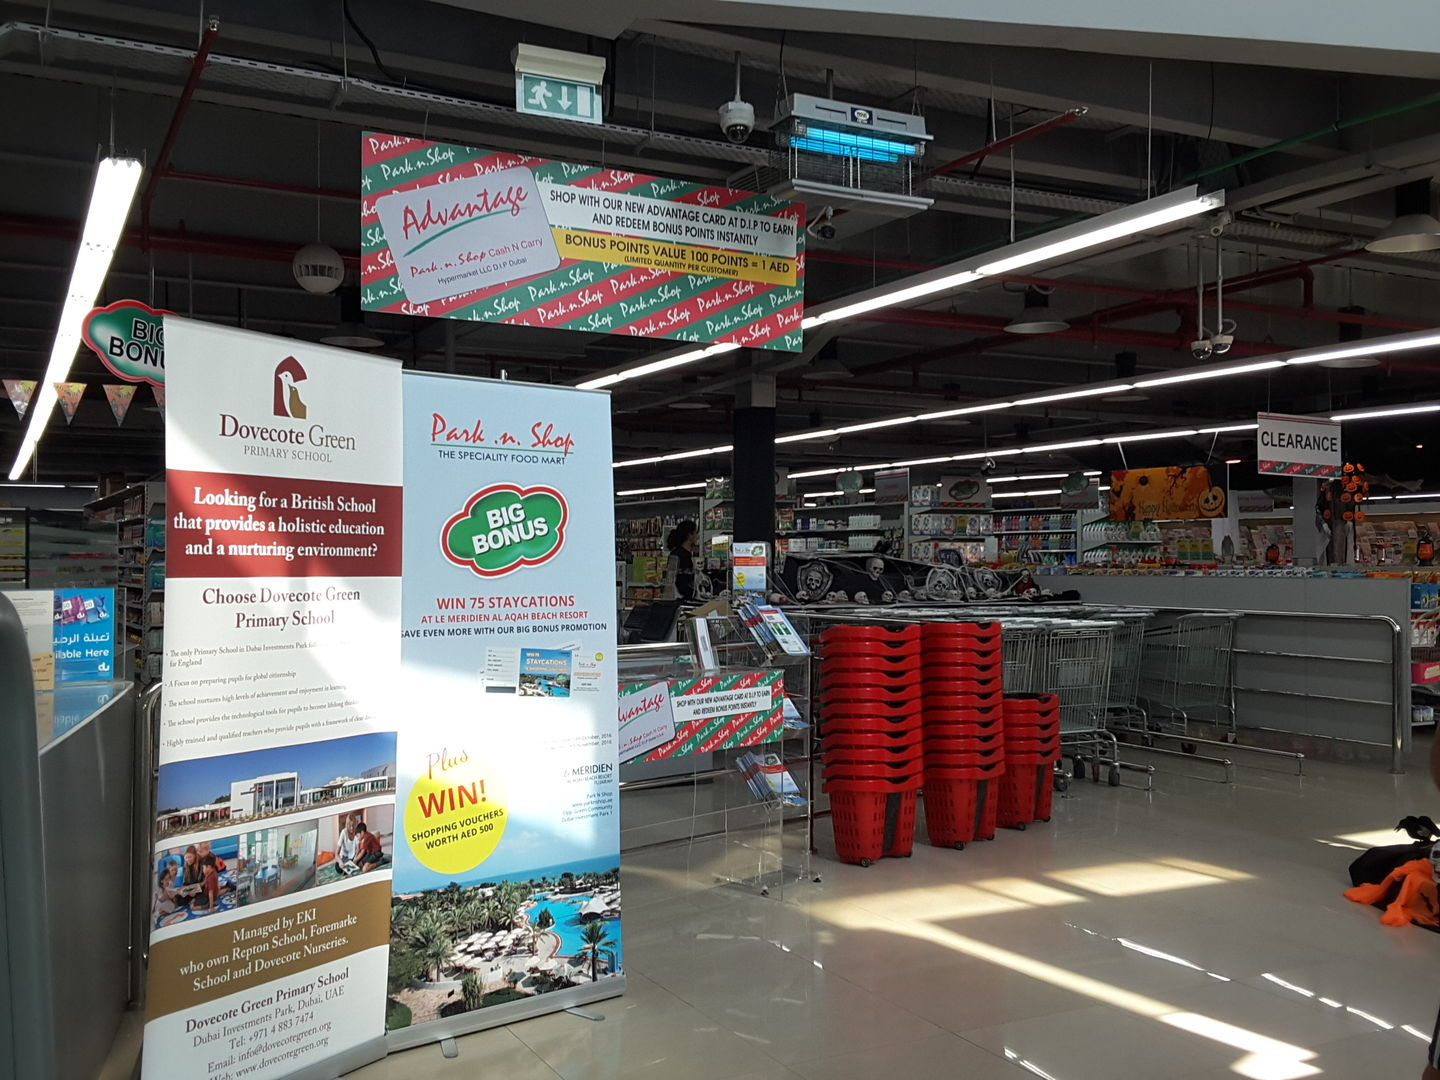 HiDubai-business-park-n-shop-cash-n-carry-hypermarket-food-beverage-supermarkets-hypermarkets-grocery-stores-green-community-dubai-investment-park-1-dubai-2